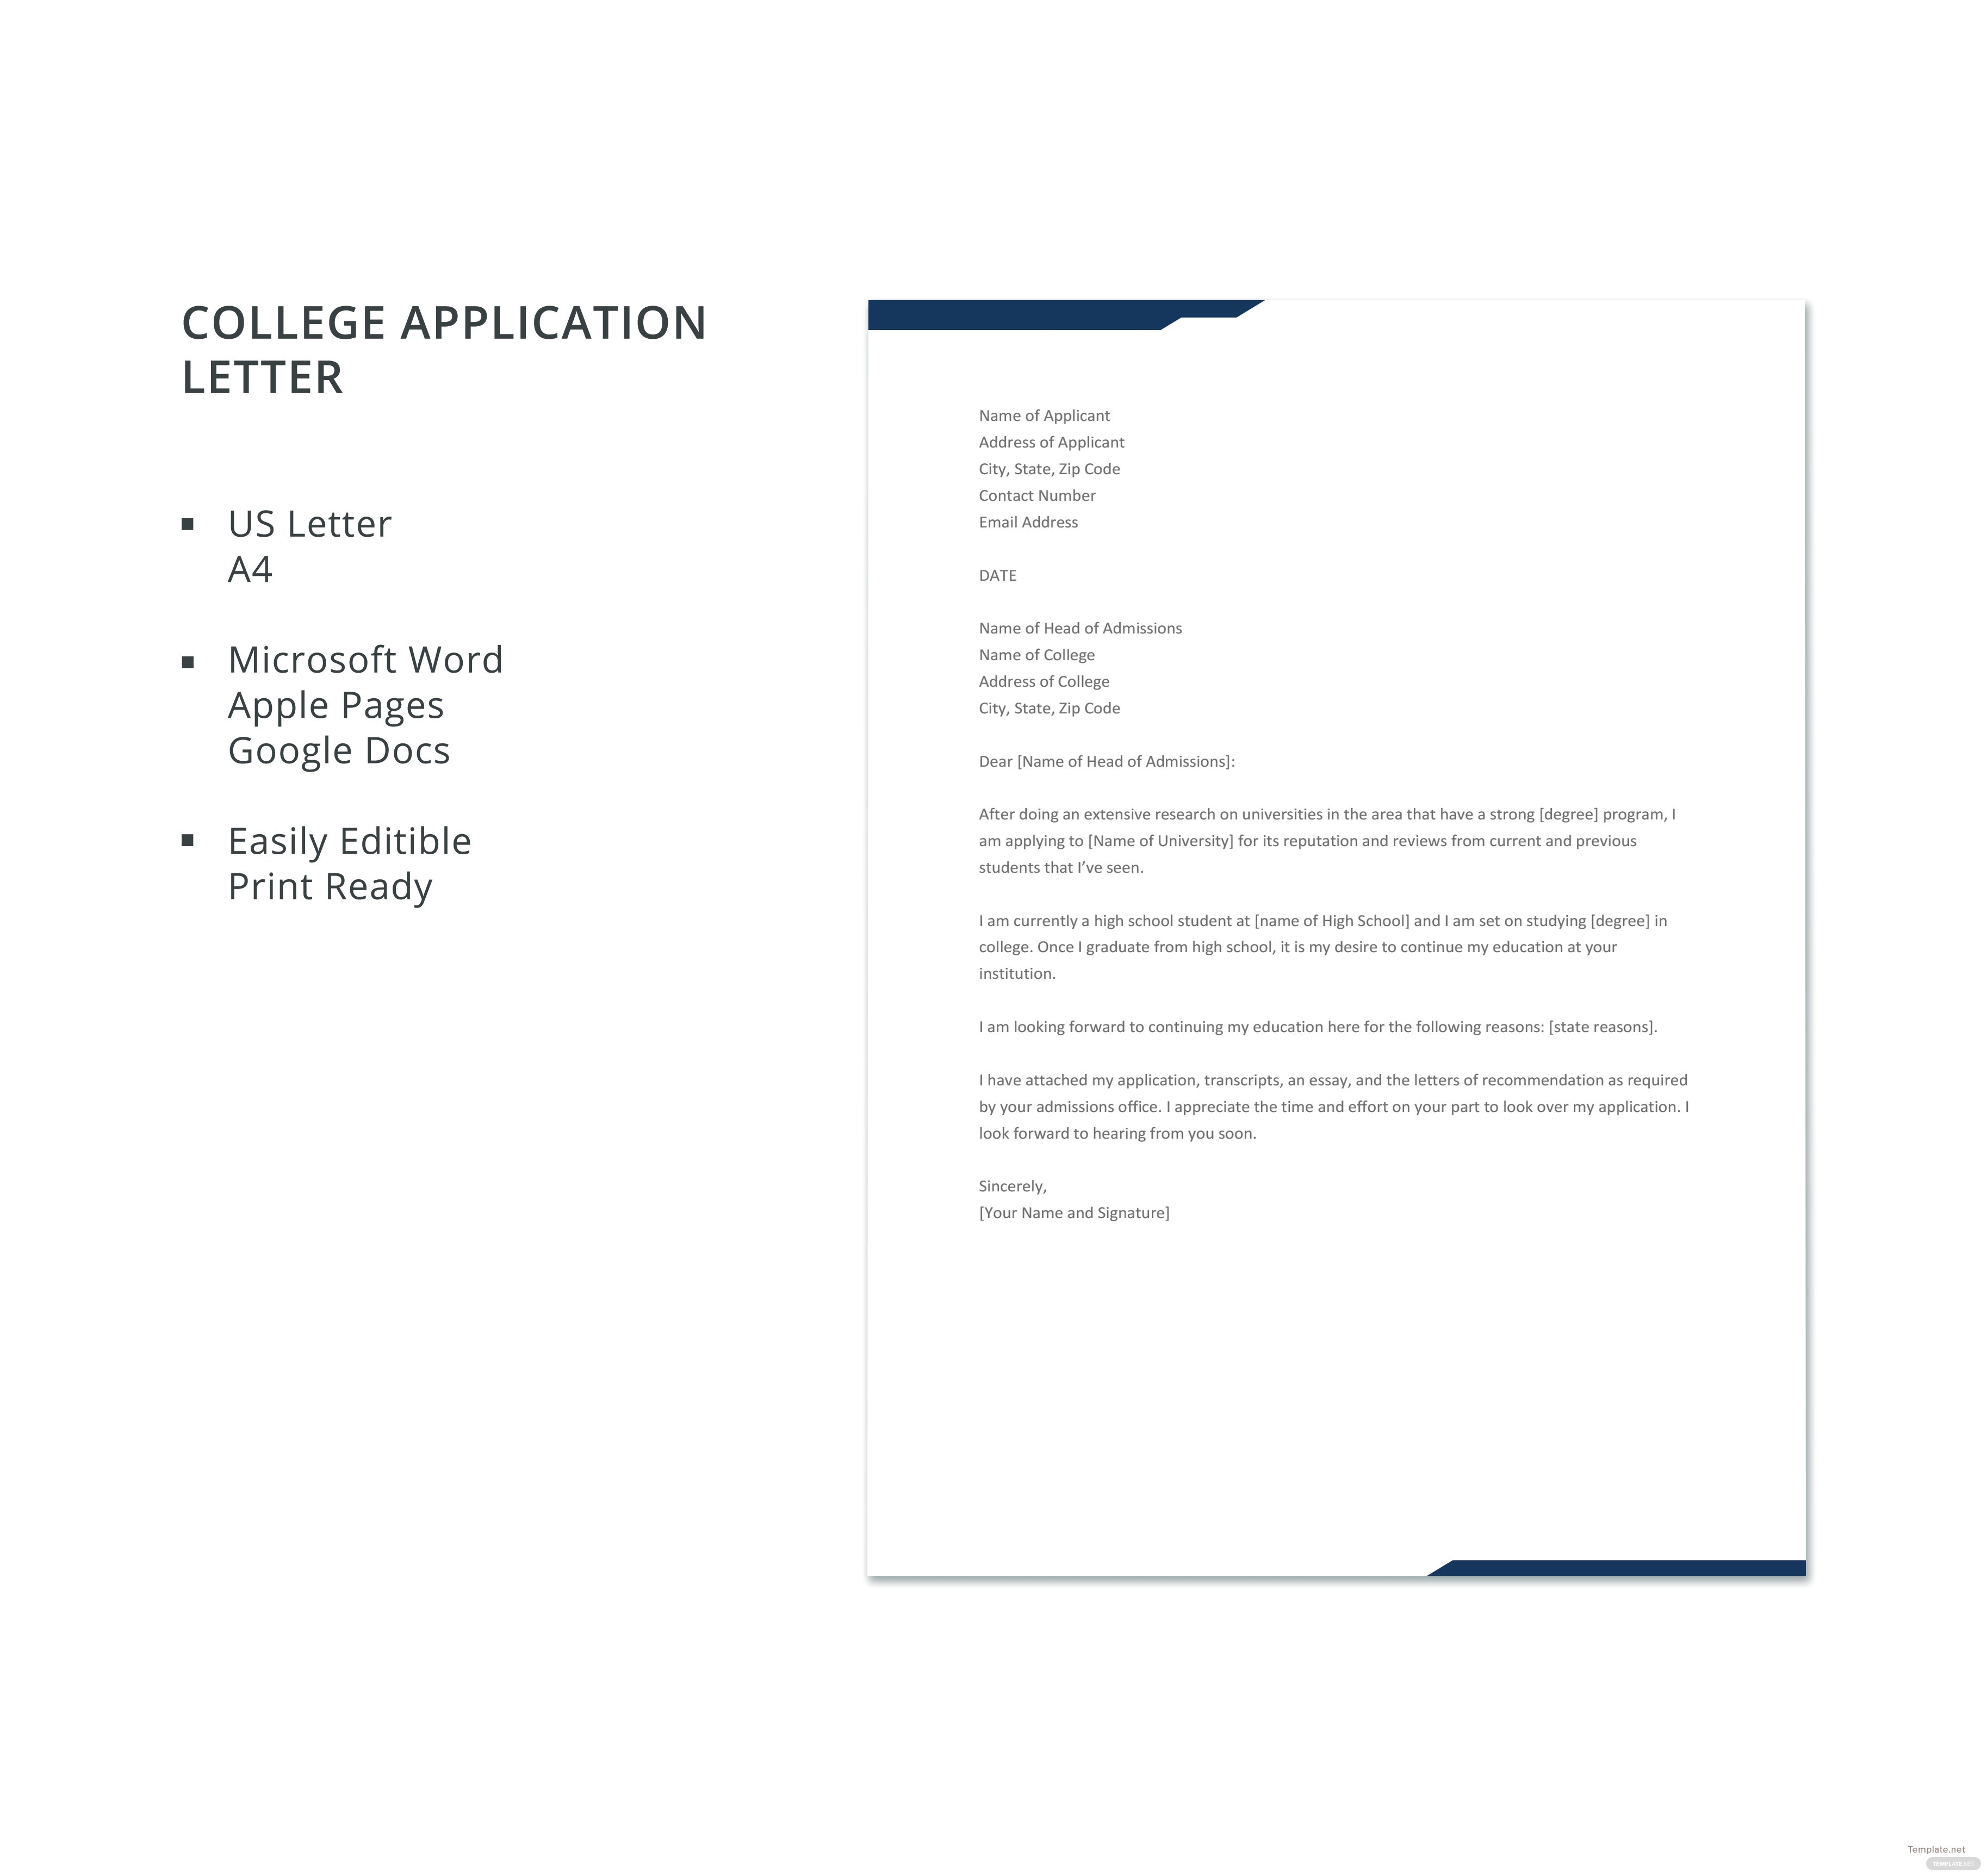 Free College Application Letter Template in Microsoft Word, Apple ...